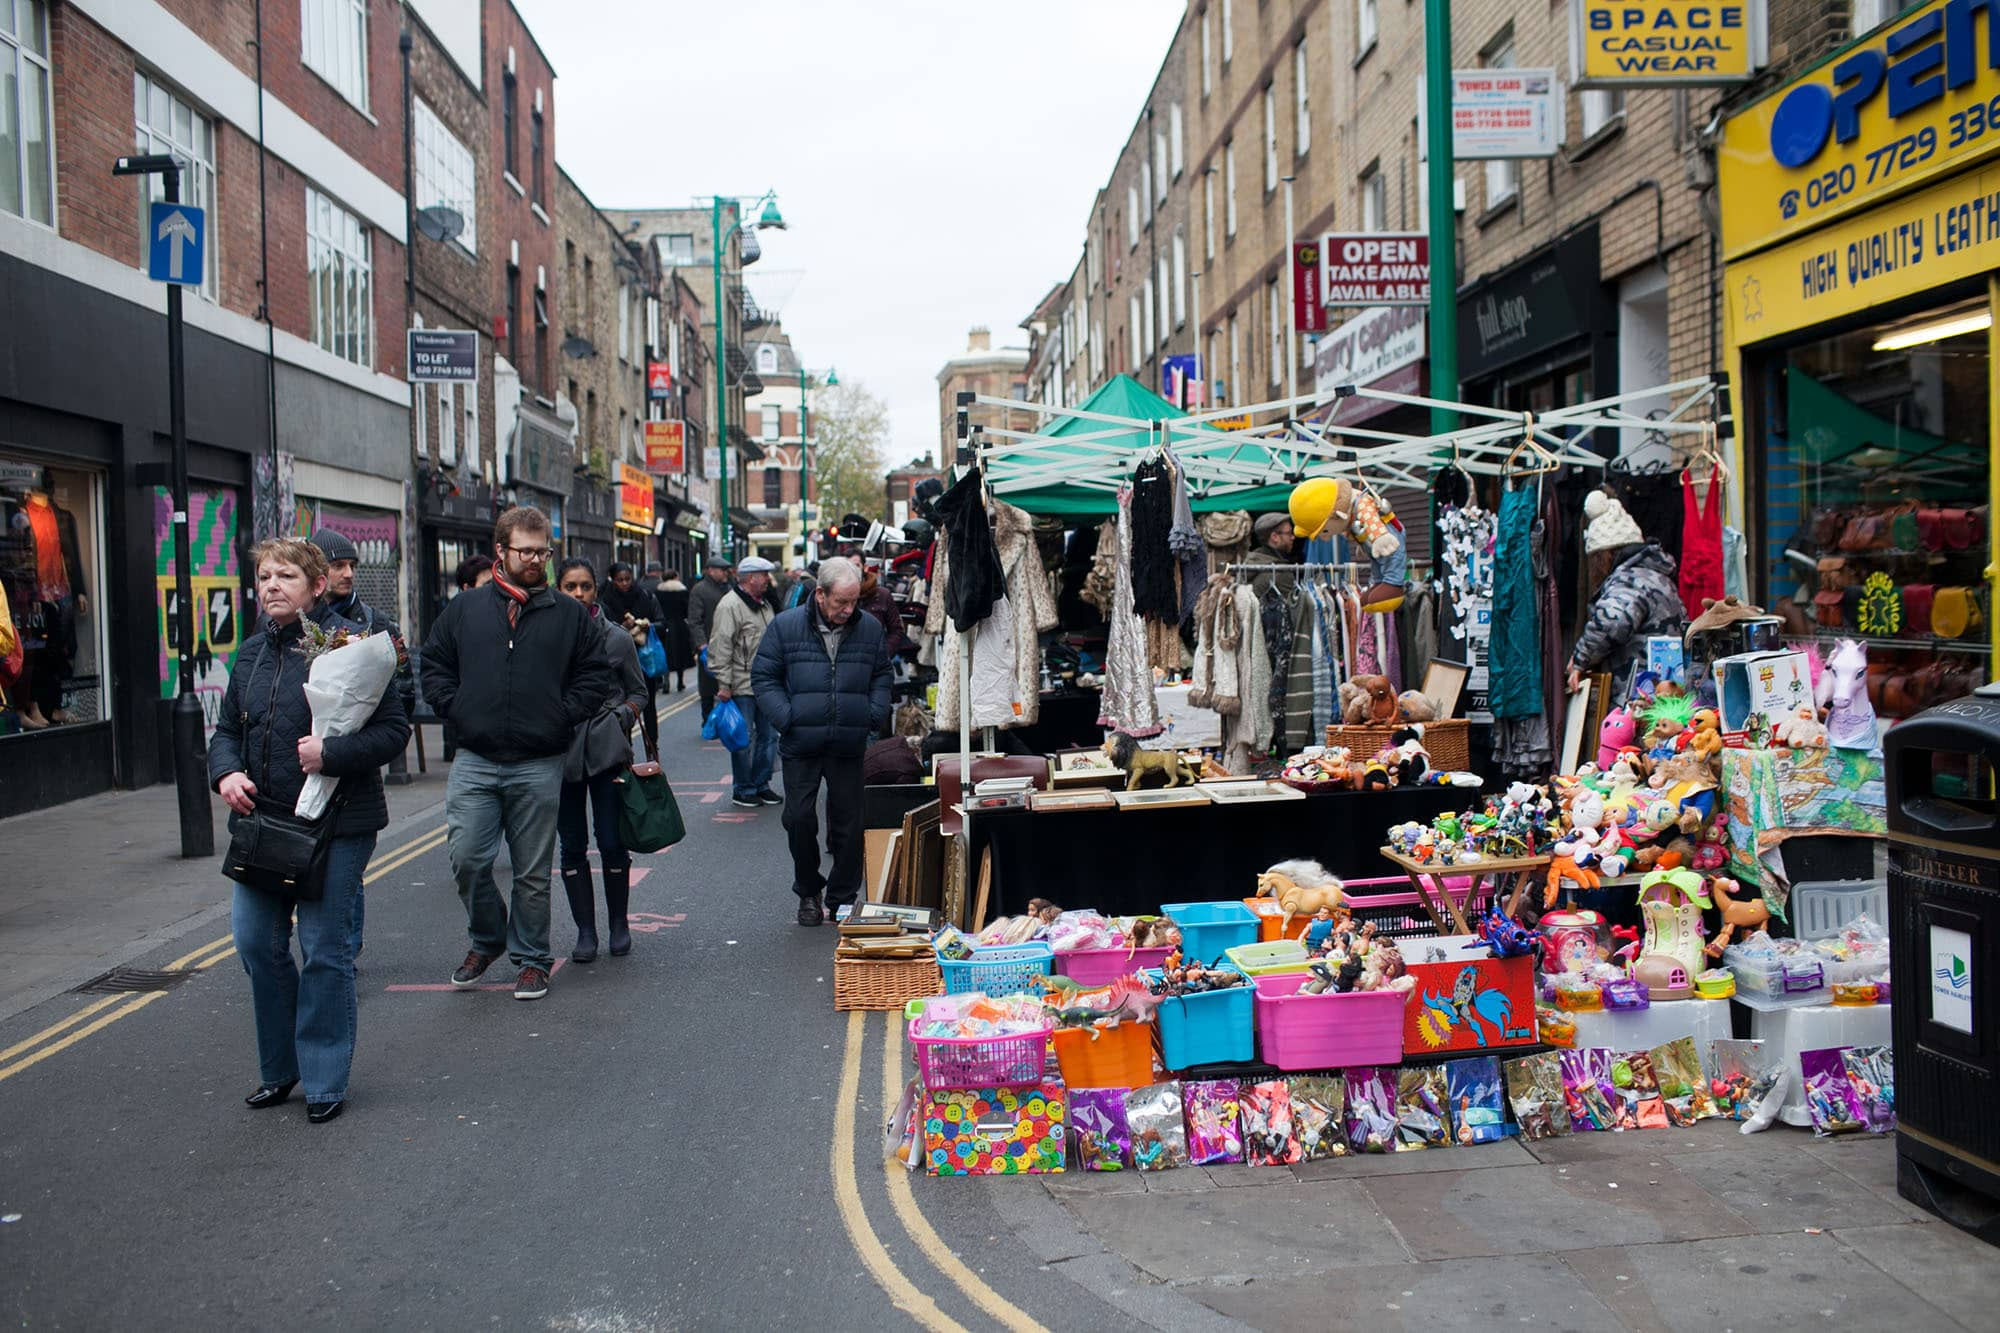 Brick Lane Market in London, England